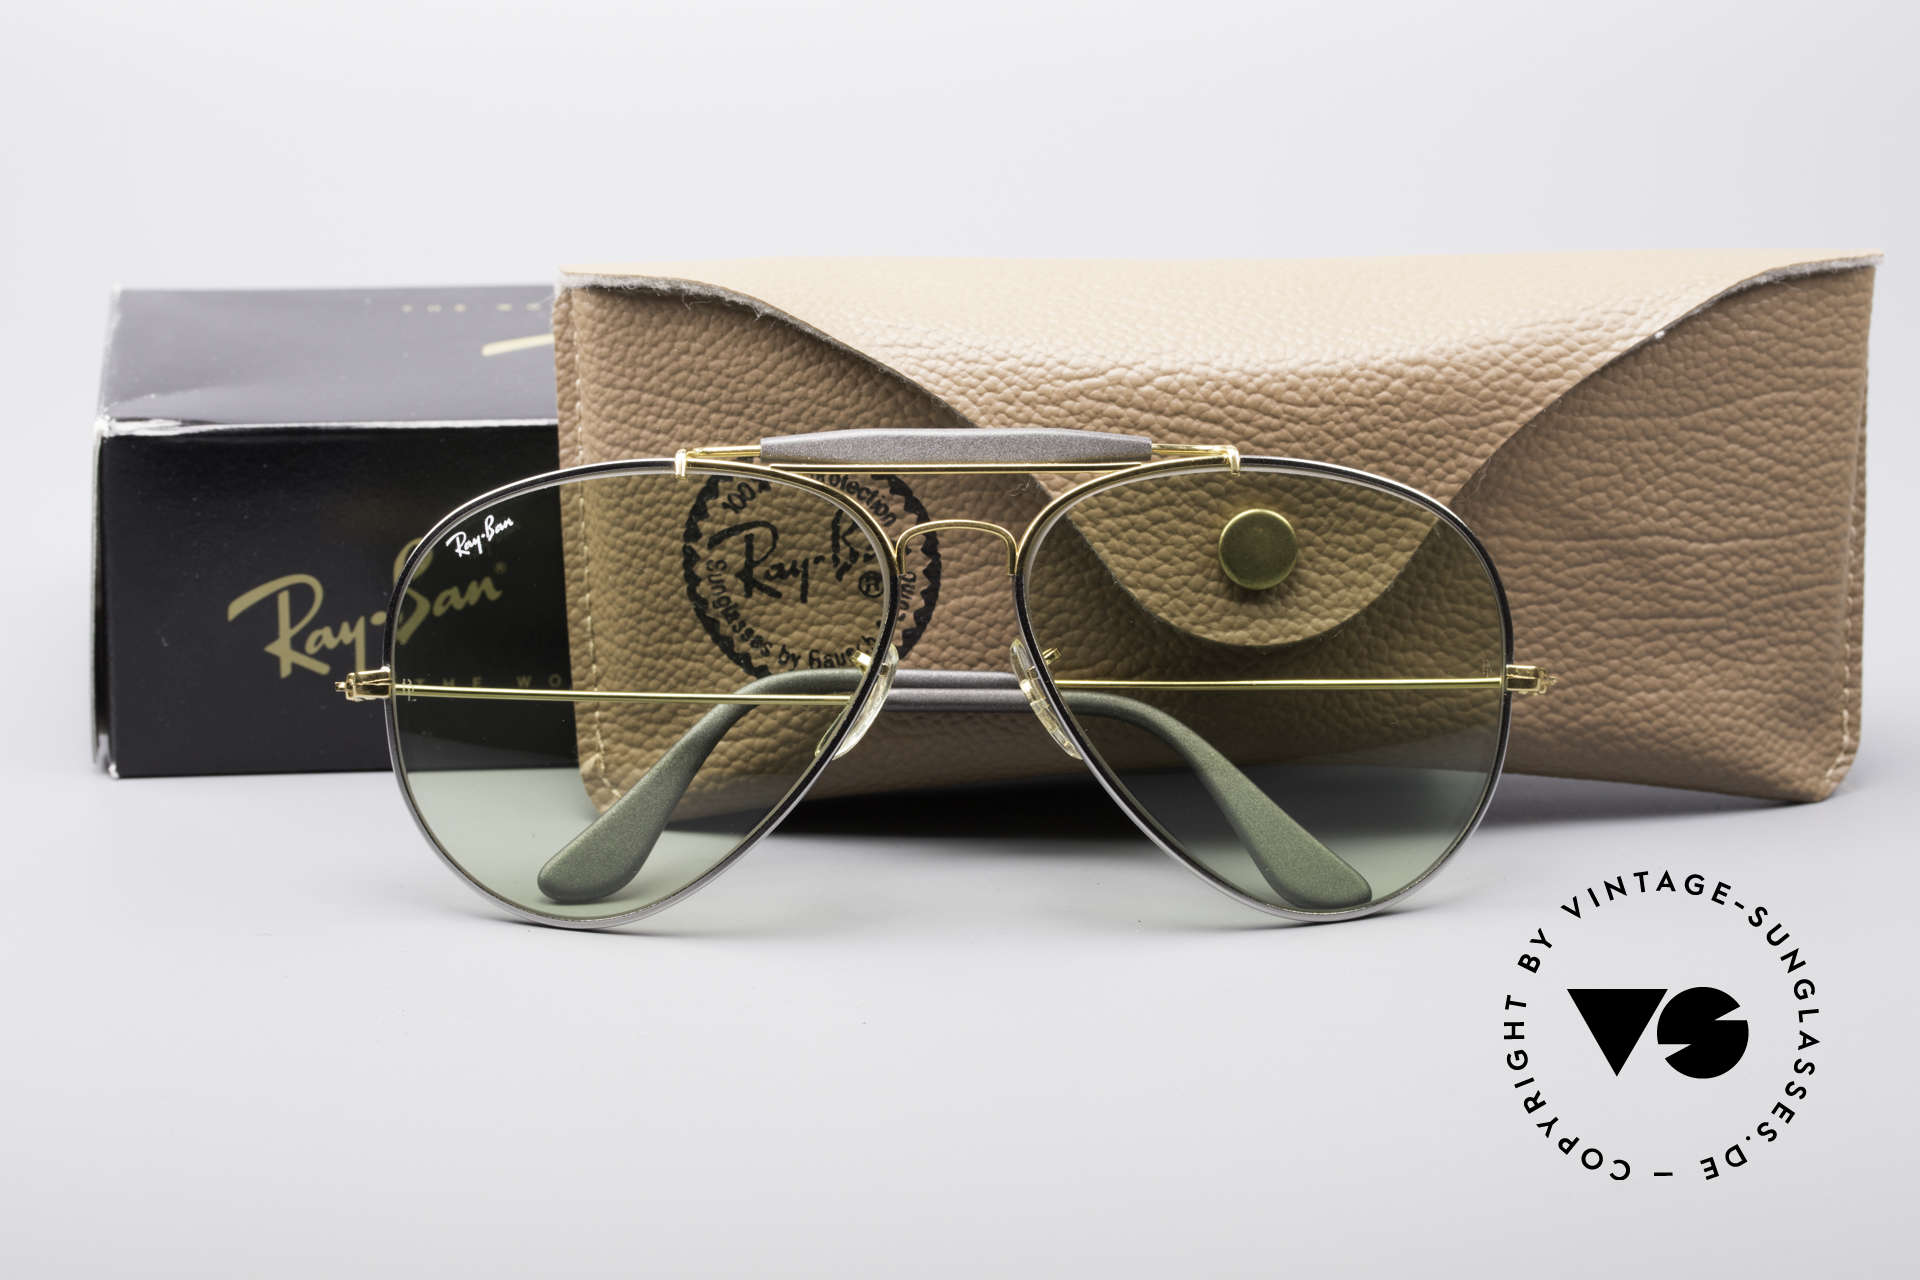 Ray Ban Outdoorsman II Precious Metals Changeable, Size: large, Made for Men